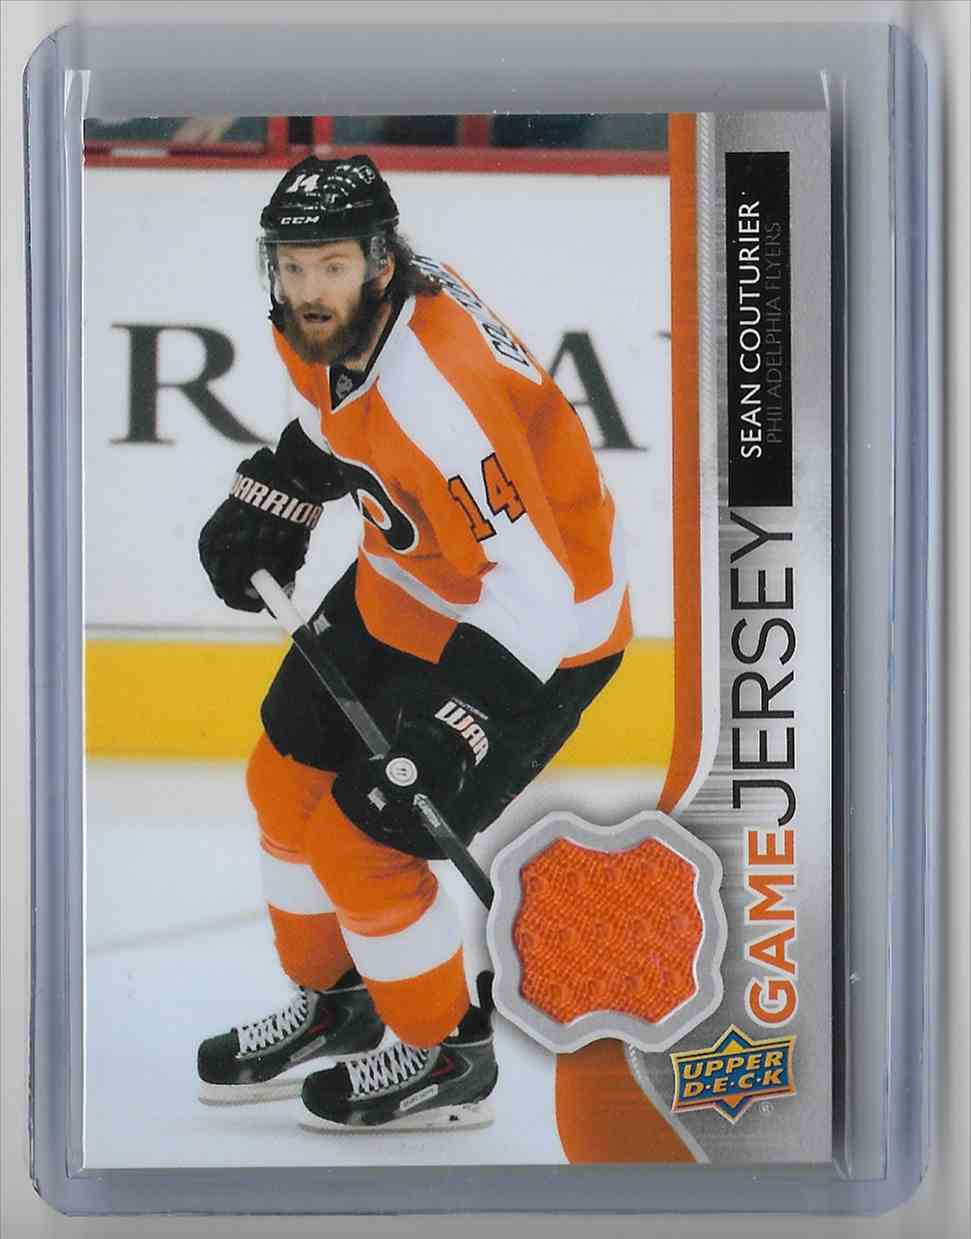 2014-15 Upper Deck Sean Couturier #GJ-CO card front image